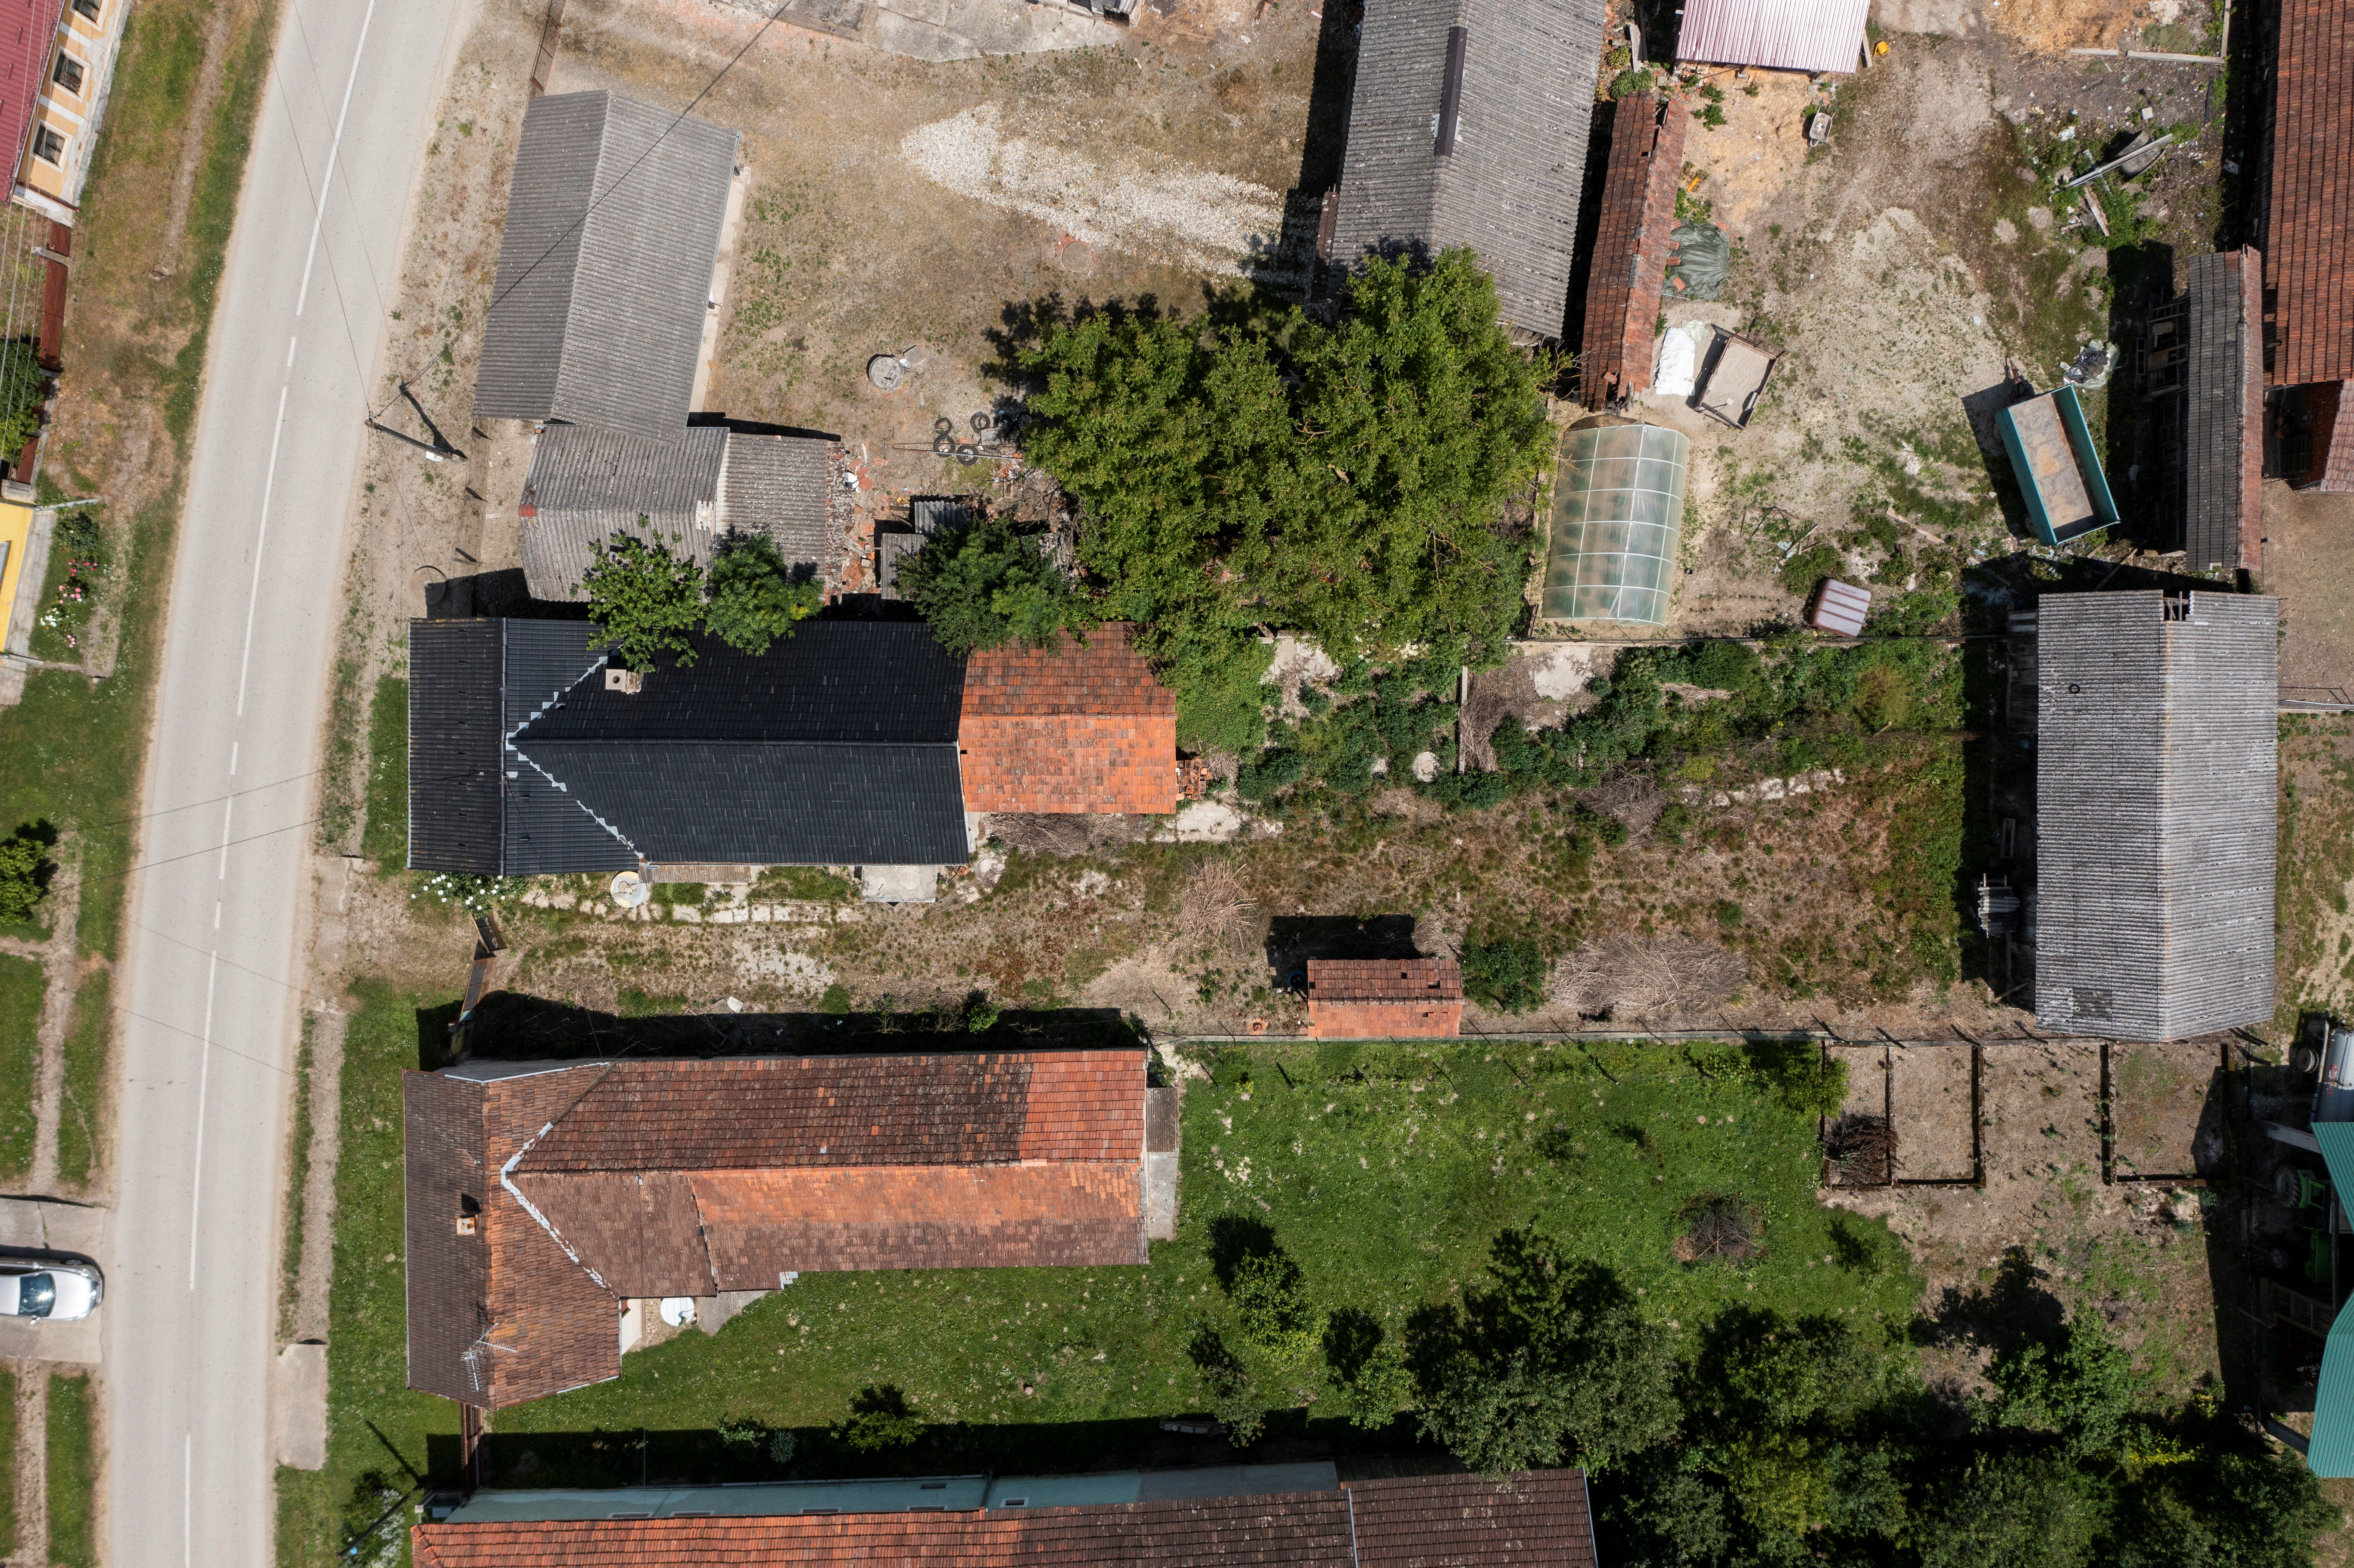 General view of a house for sale for 1 HRK in village Zablatje, Croatia, June 10, 2021. REUTERS/Antonio Bronic